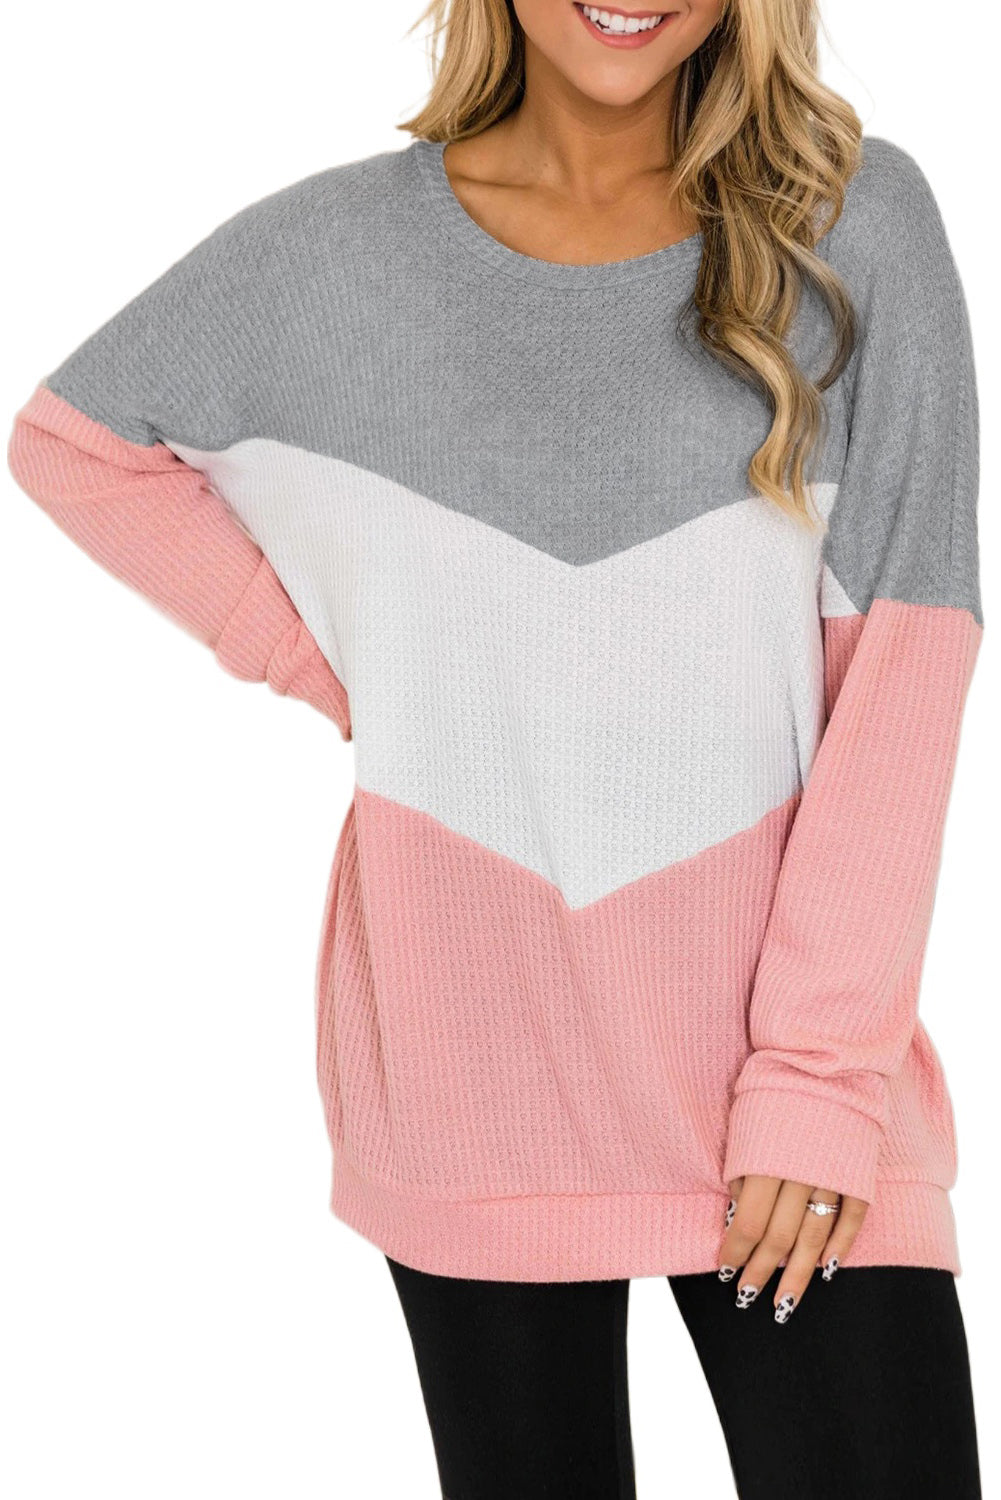 Pink Chevron Waffle Colorblock Pullover Sweatshirt Sweatshirts & Hoodies Discount Designer Fashion Clothes Shoes Bags Women Men Kids Children Black Owned Business